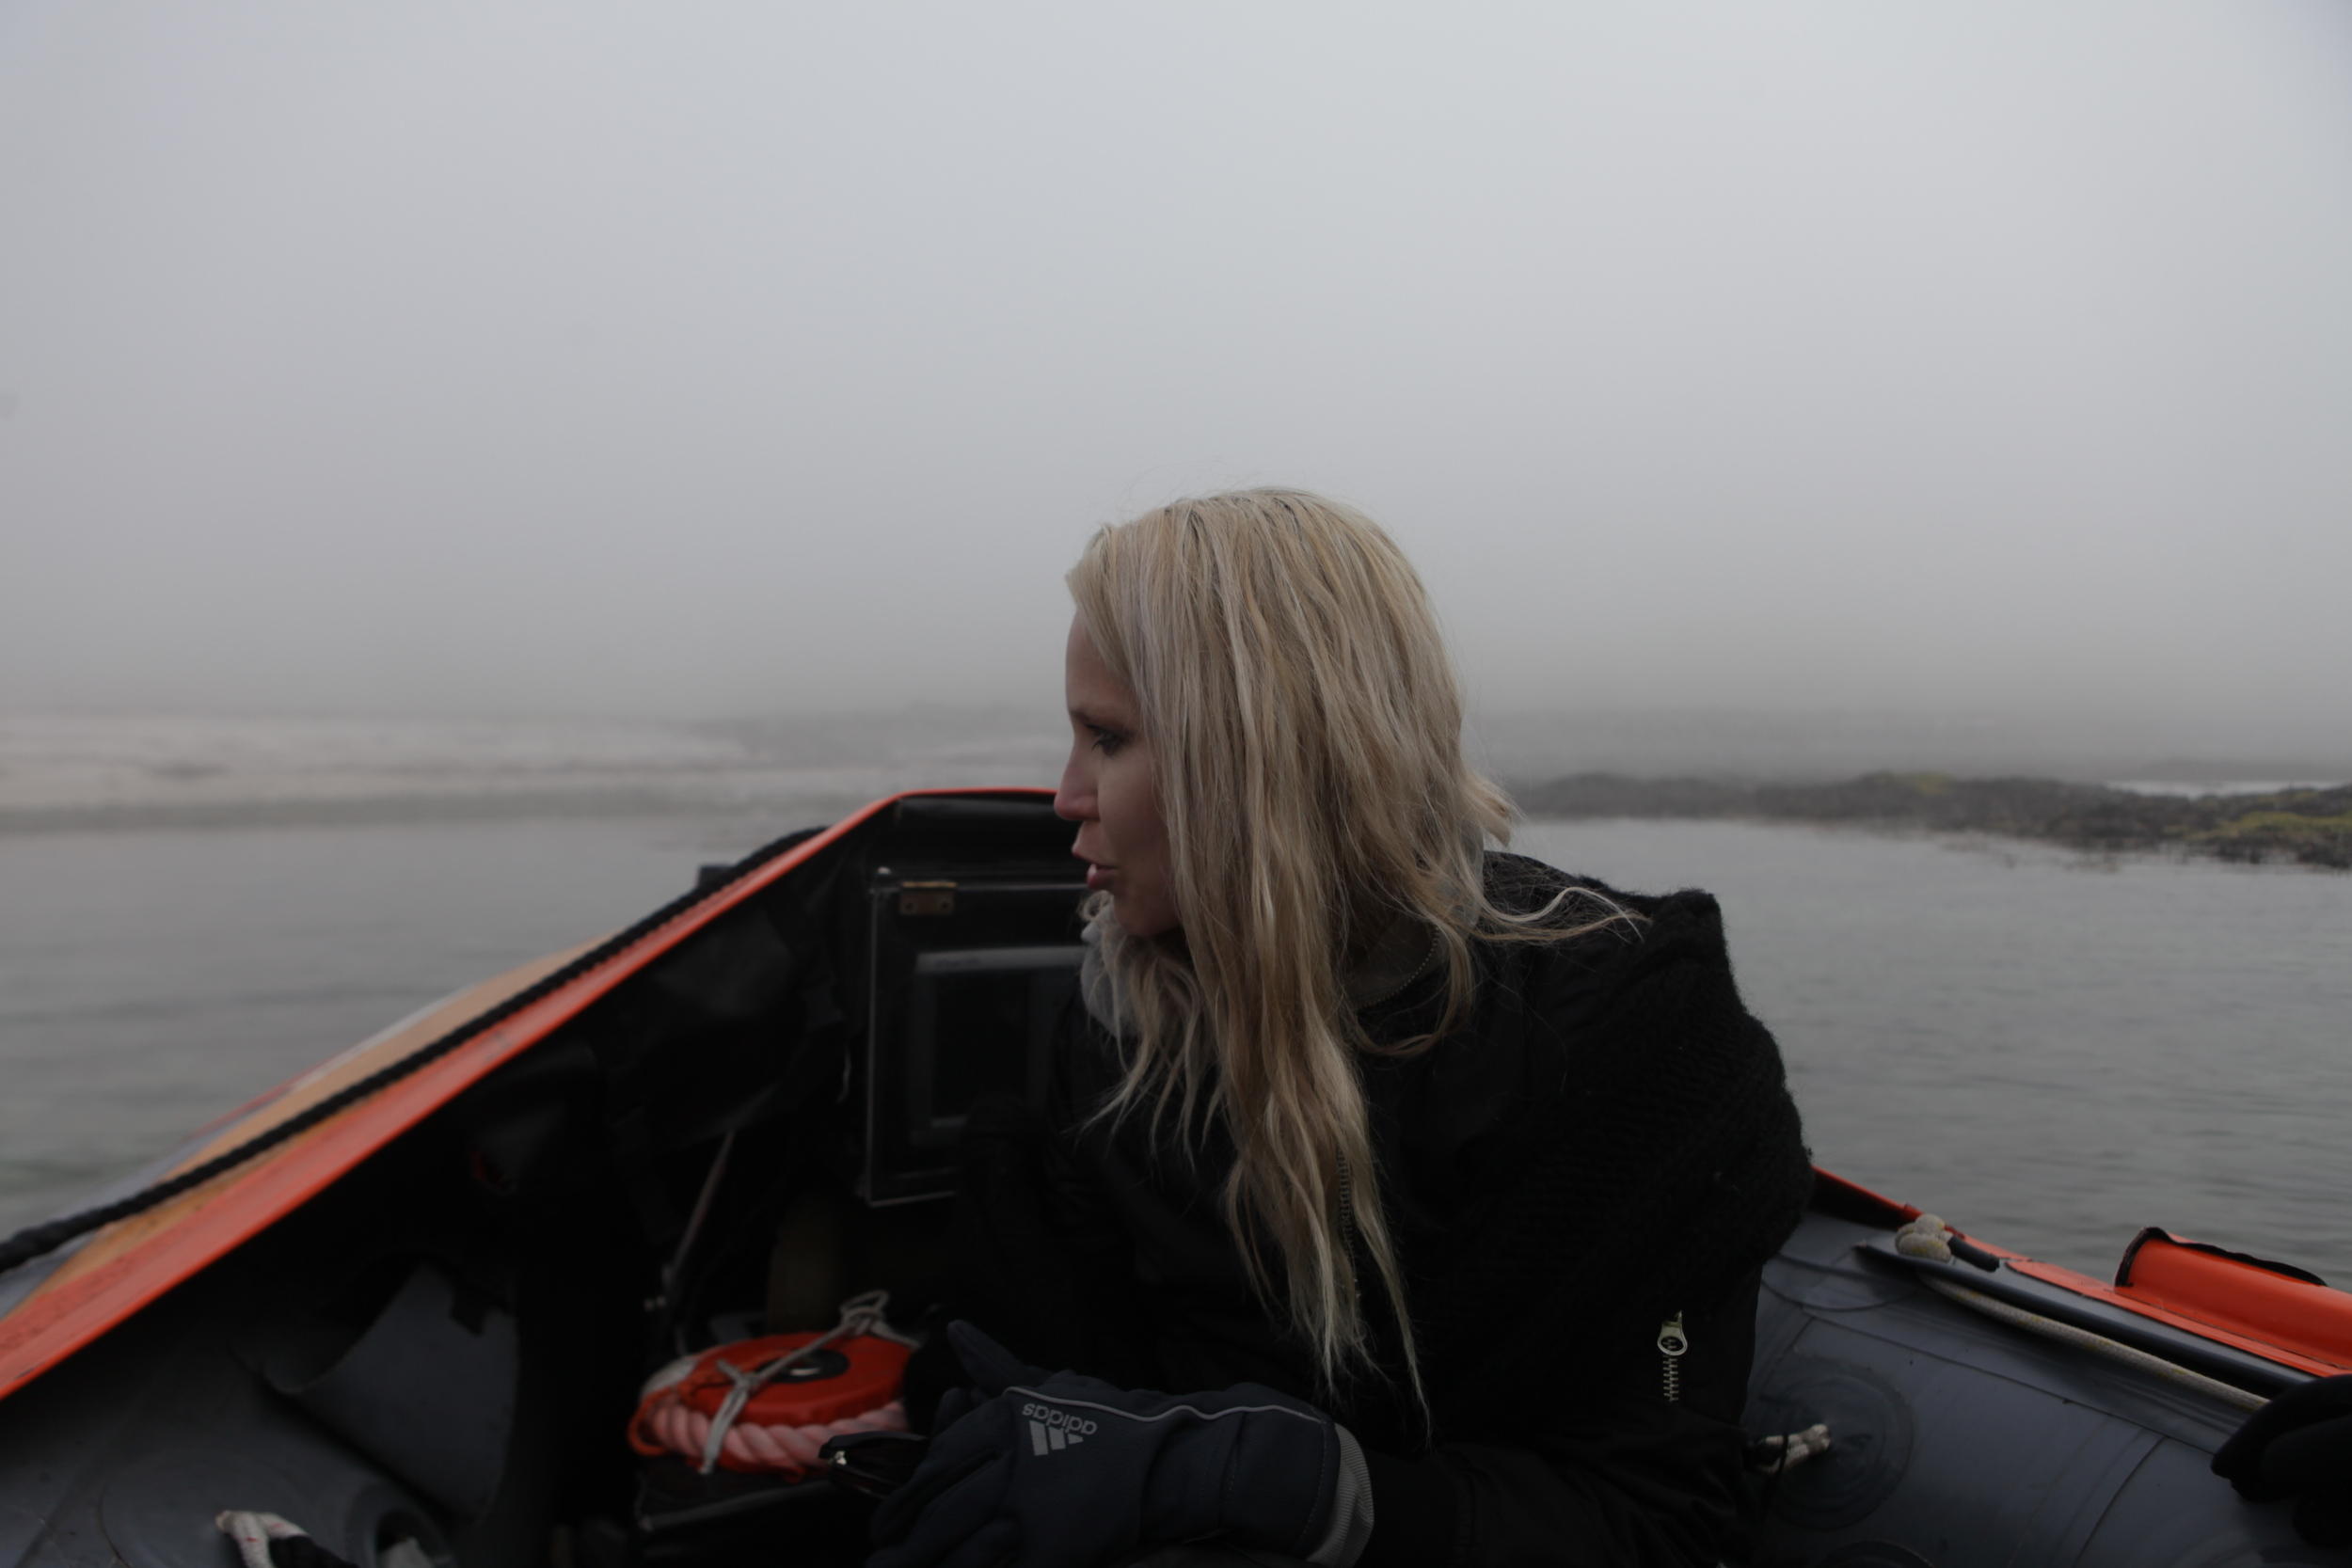 Approaching land in a mythical fog